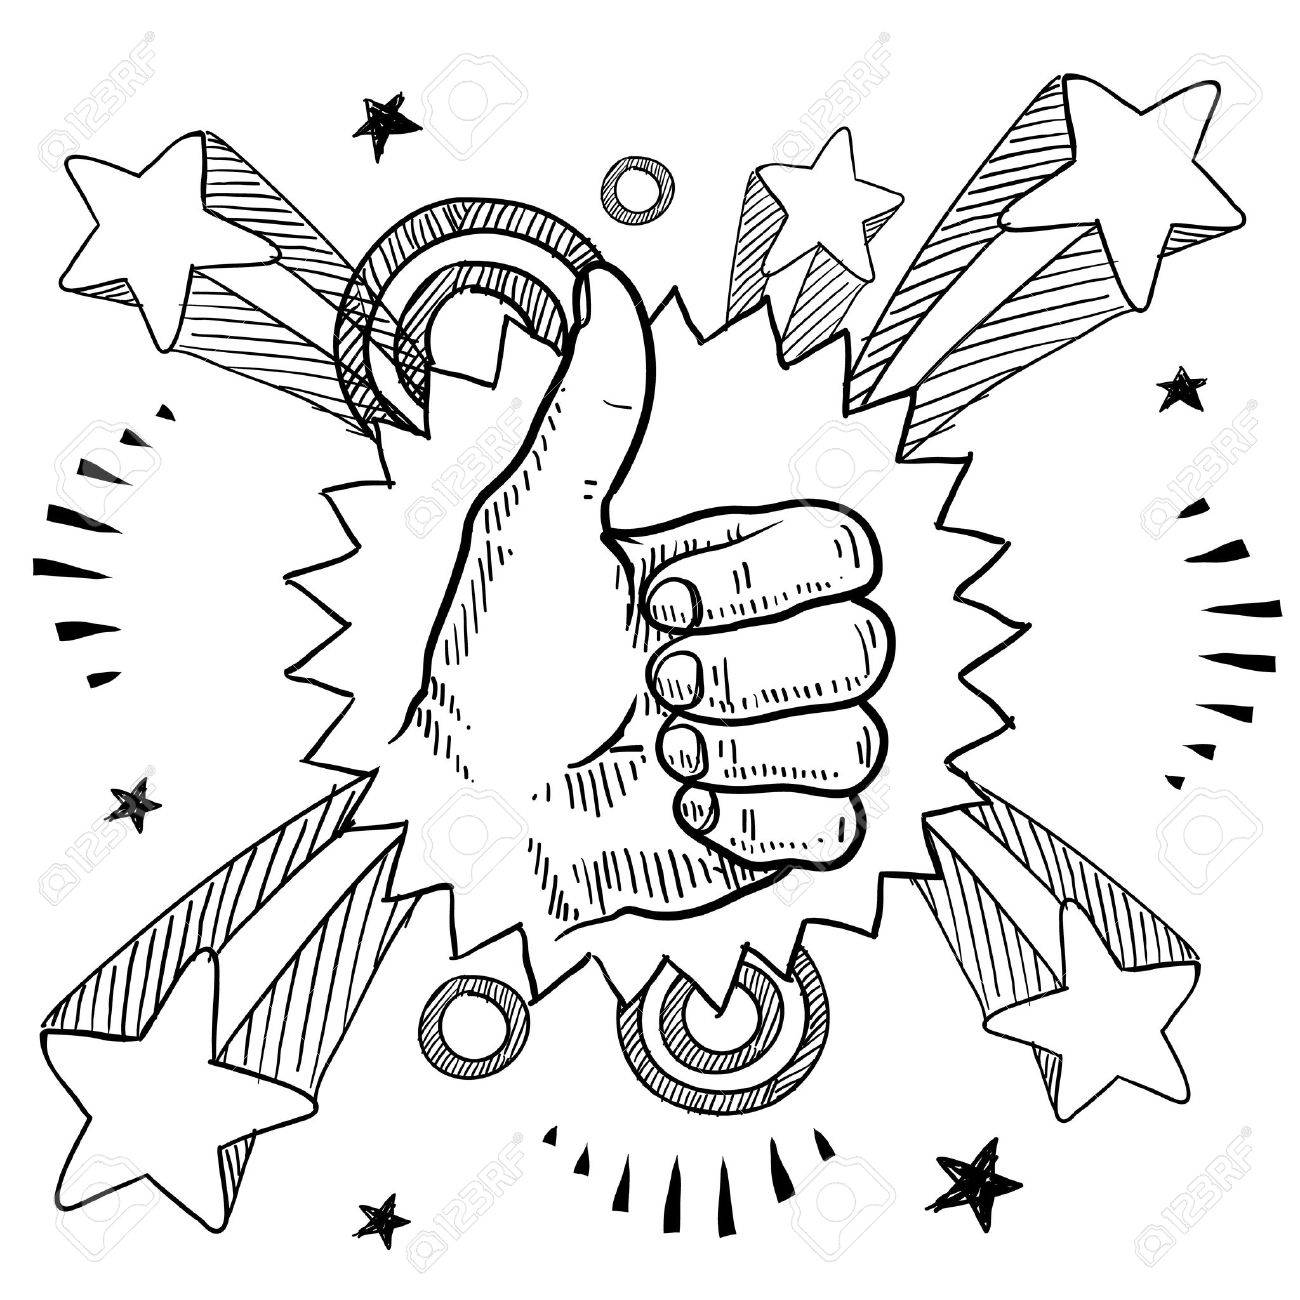 1300x1300 Doodle Style Sketch Of A Thumbs Up Sign With Pop Explosion